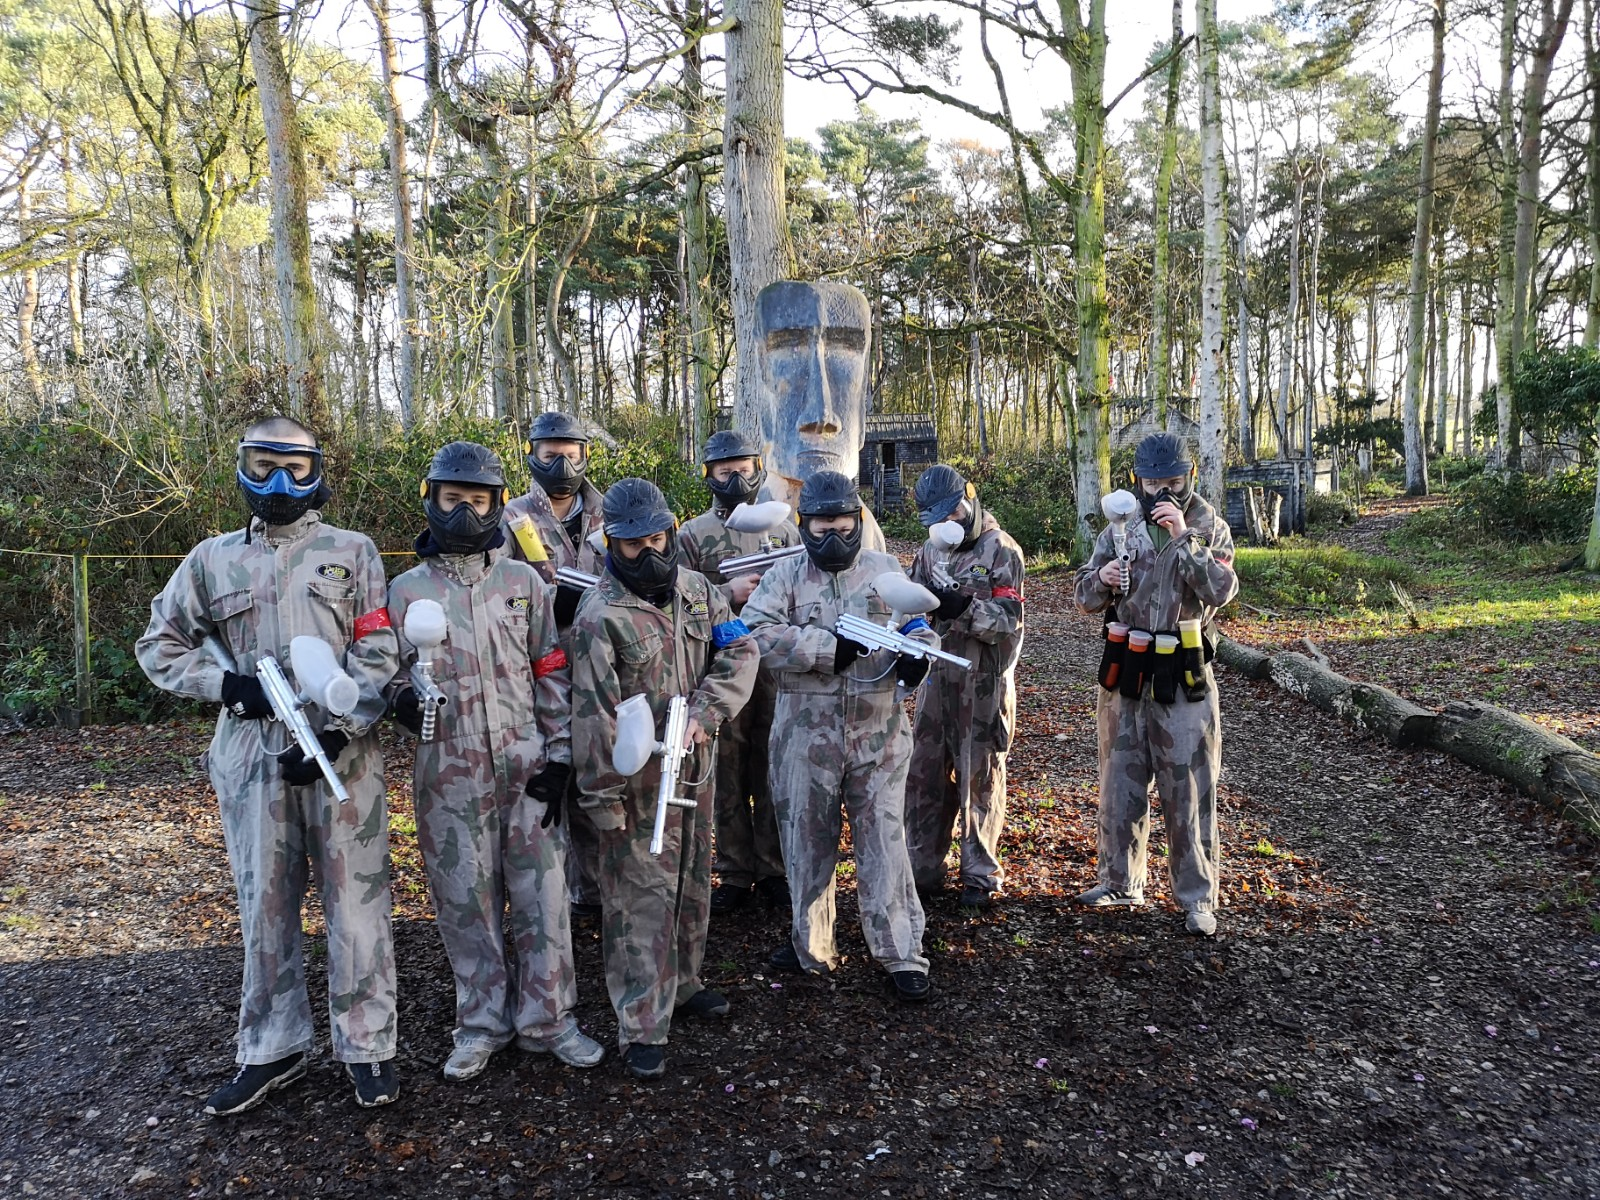 Paintball – The tale of 'The Ghost', 'Stealth' and 'The Sniper'